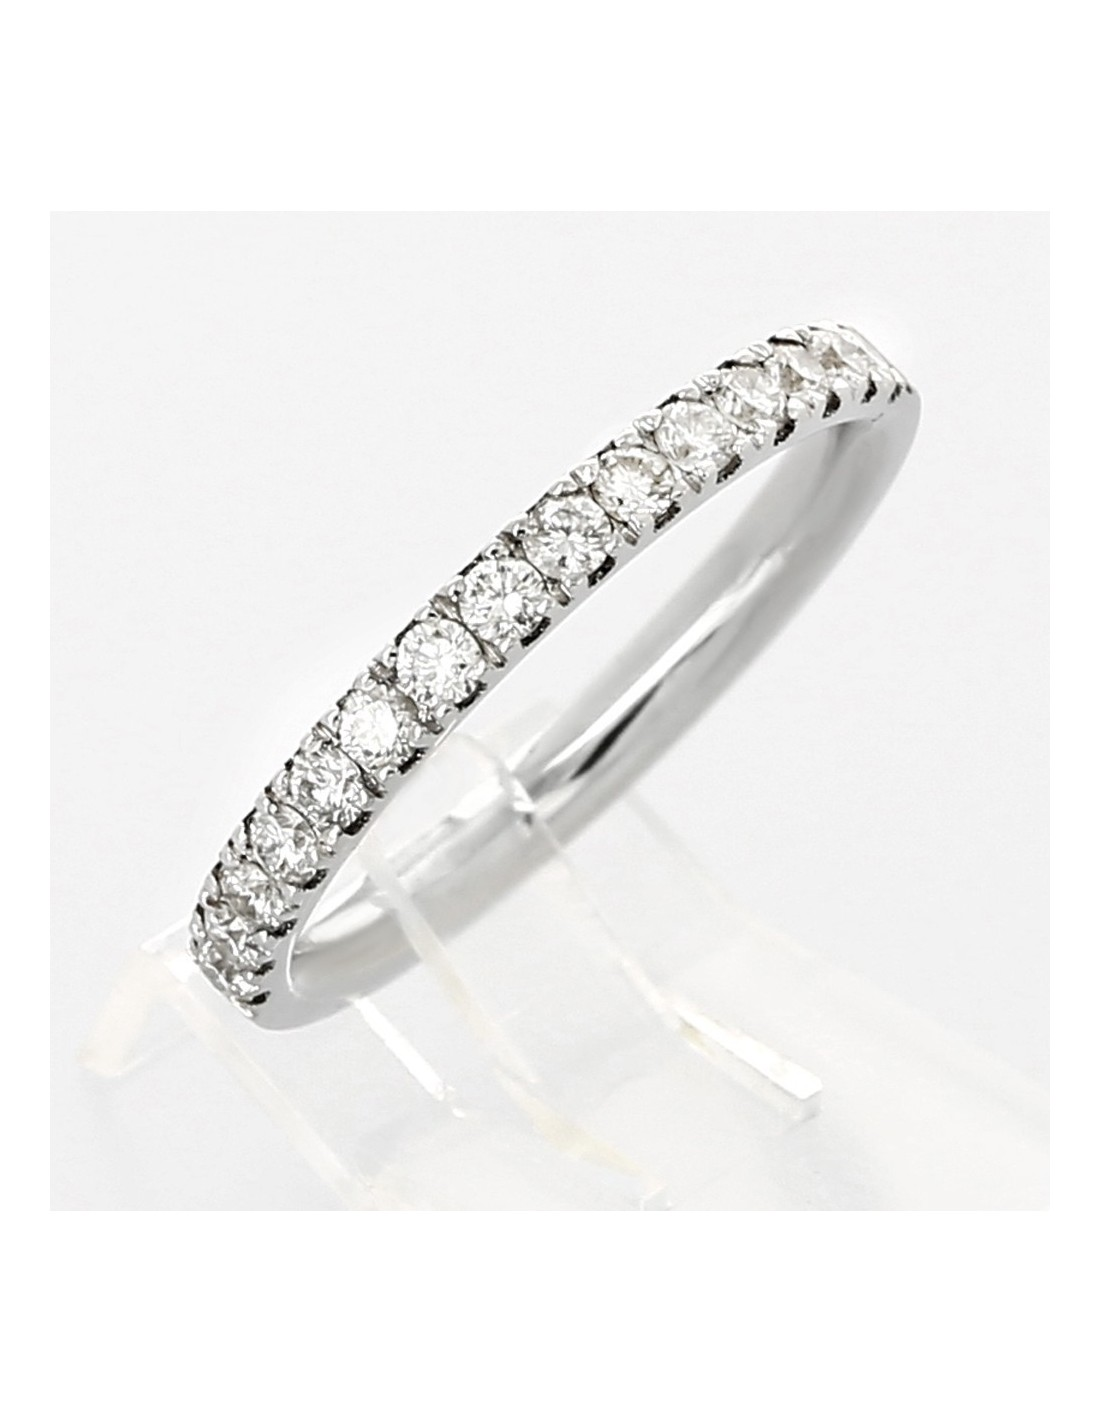 Alliance Femme En Or Et Diamants Eden Tellor Diamantaire